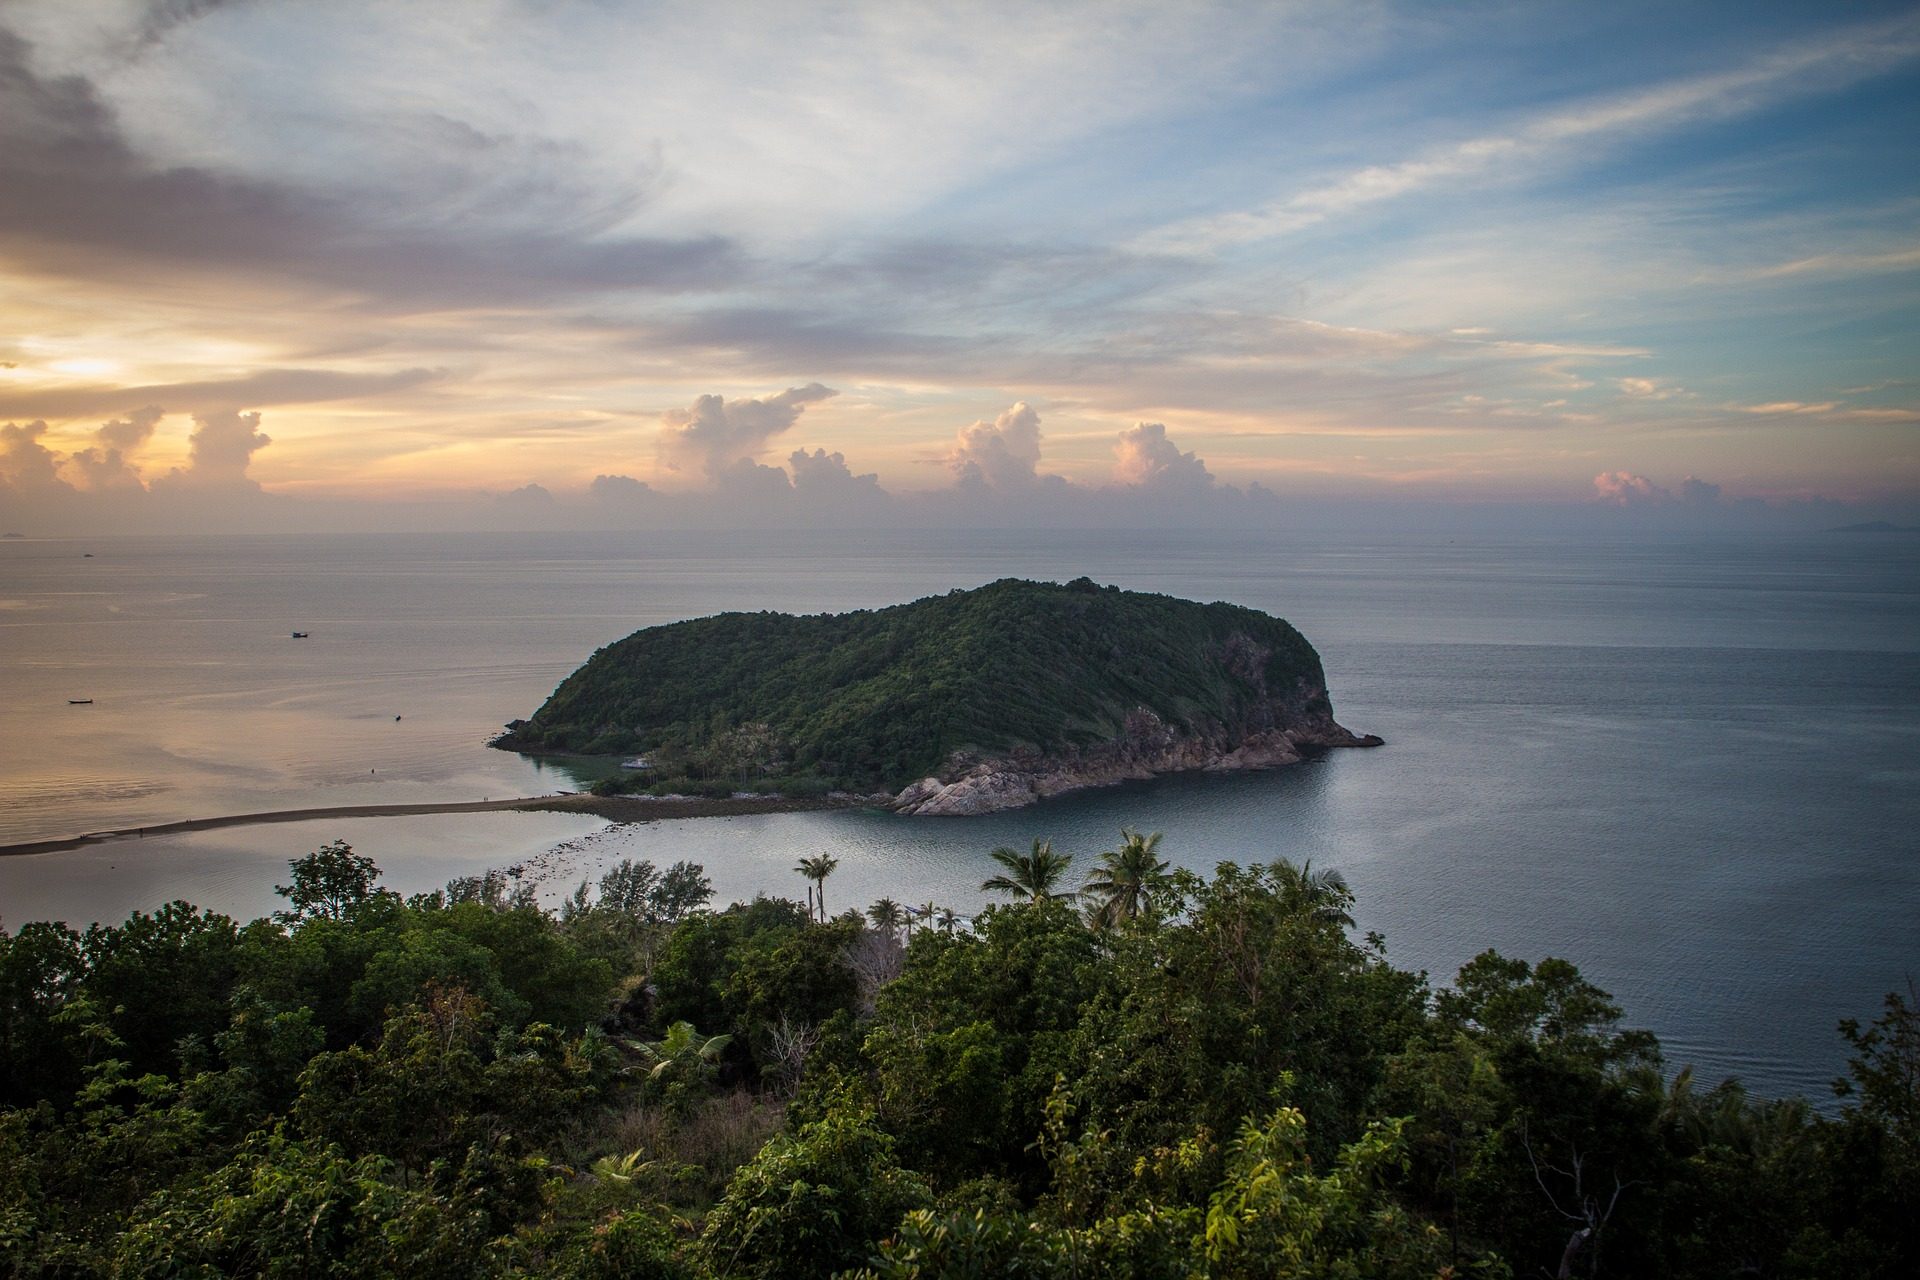 Koh Phangan | DigiNo | 10 Best Locations For Digital Nomads